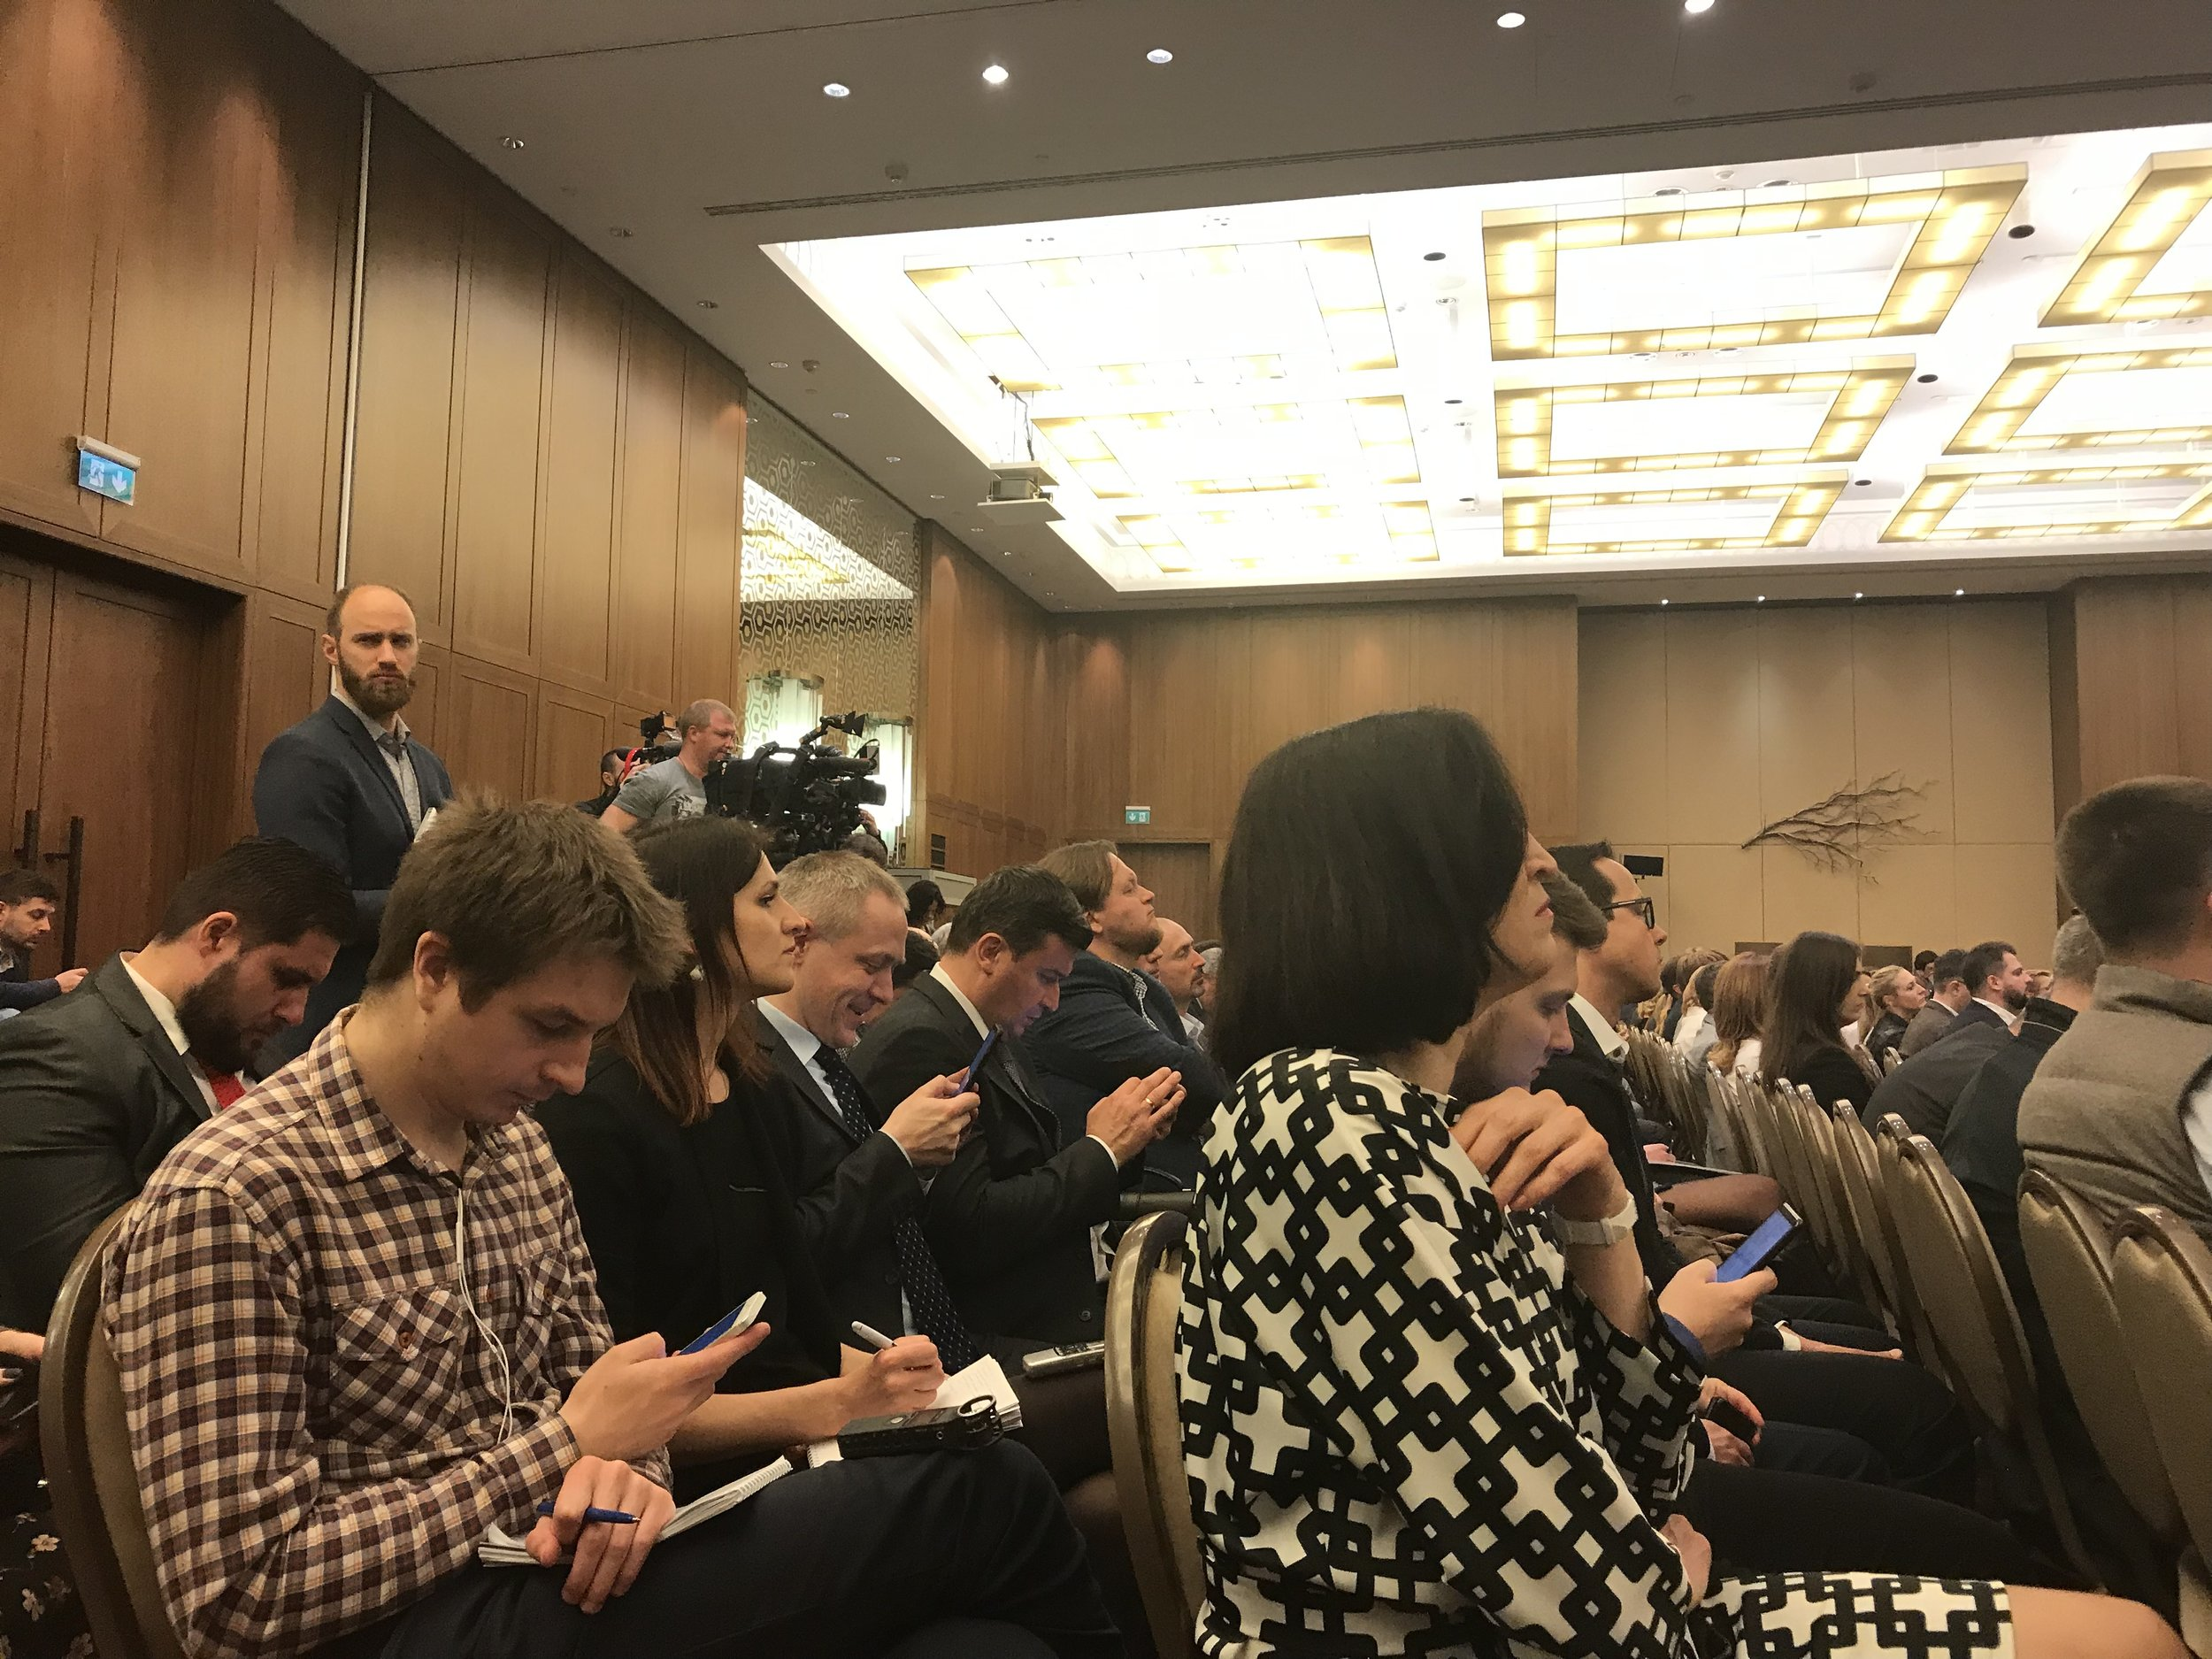 Audience members checking their devices during a panel discussion at the Hilton Hotel Kyiv in April, 2019.